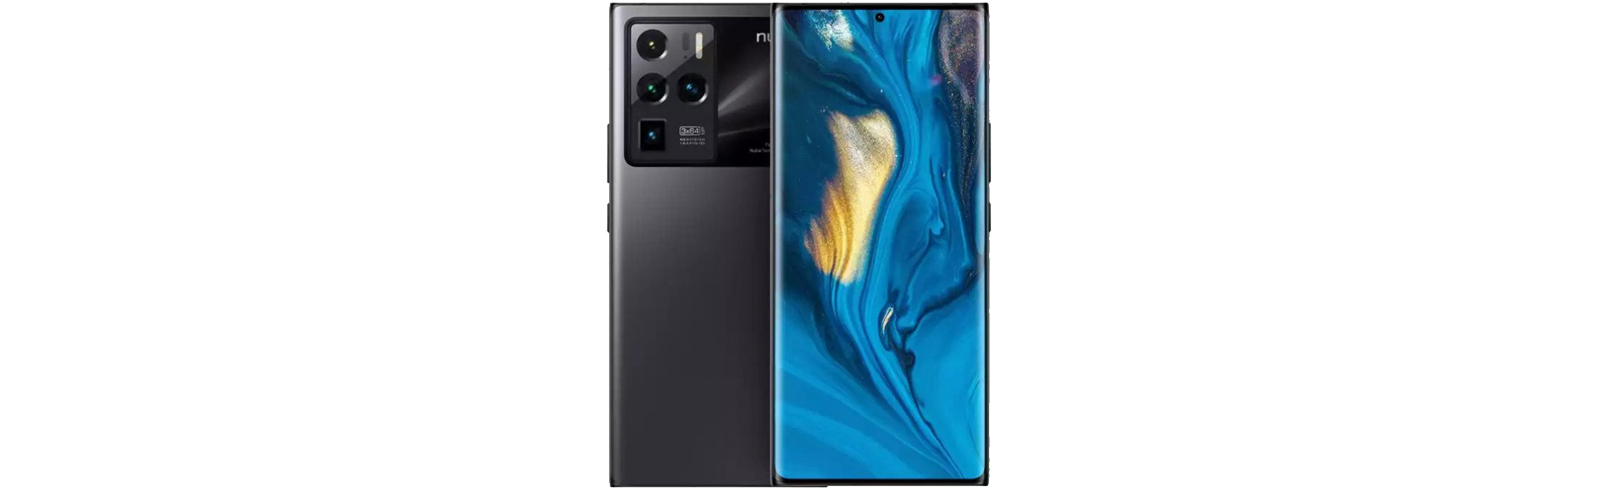 """nubia Z30 Pro is unveiled with a 6.67"""" 144Hz OLED display, Snapdragon 888, three 64MP cameras"""